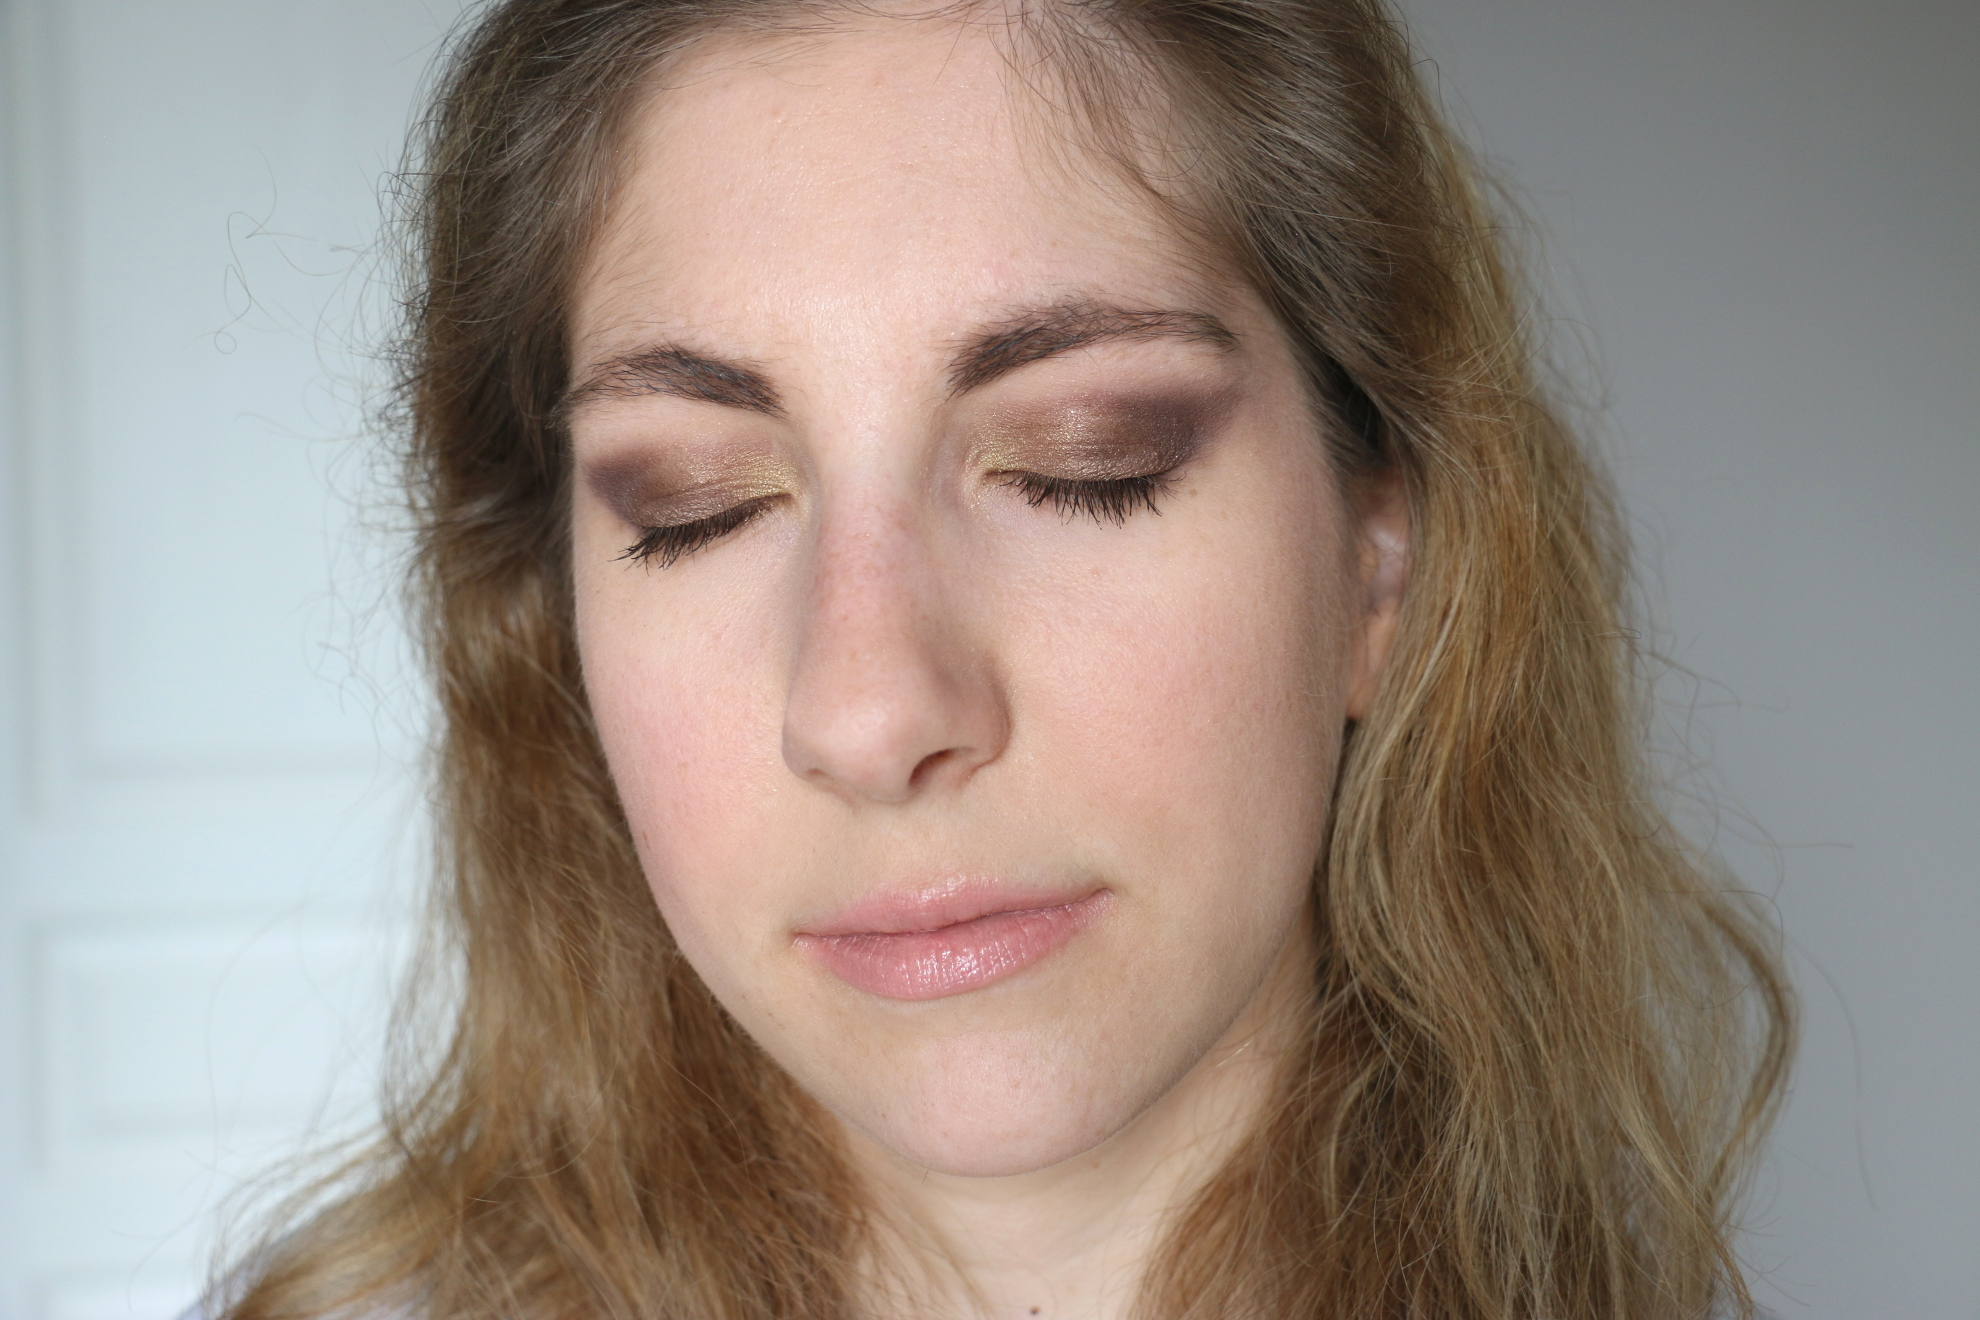 Golden Brown | Monday Shadow Challenge